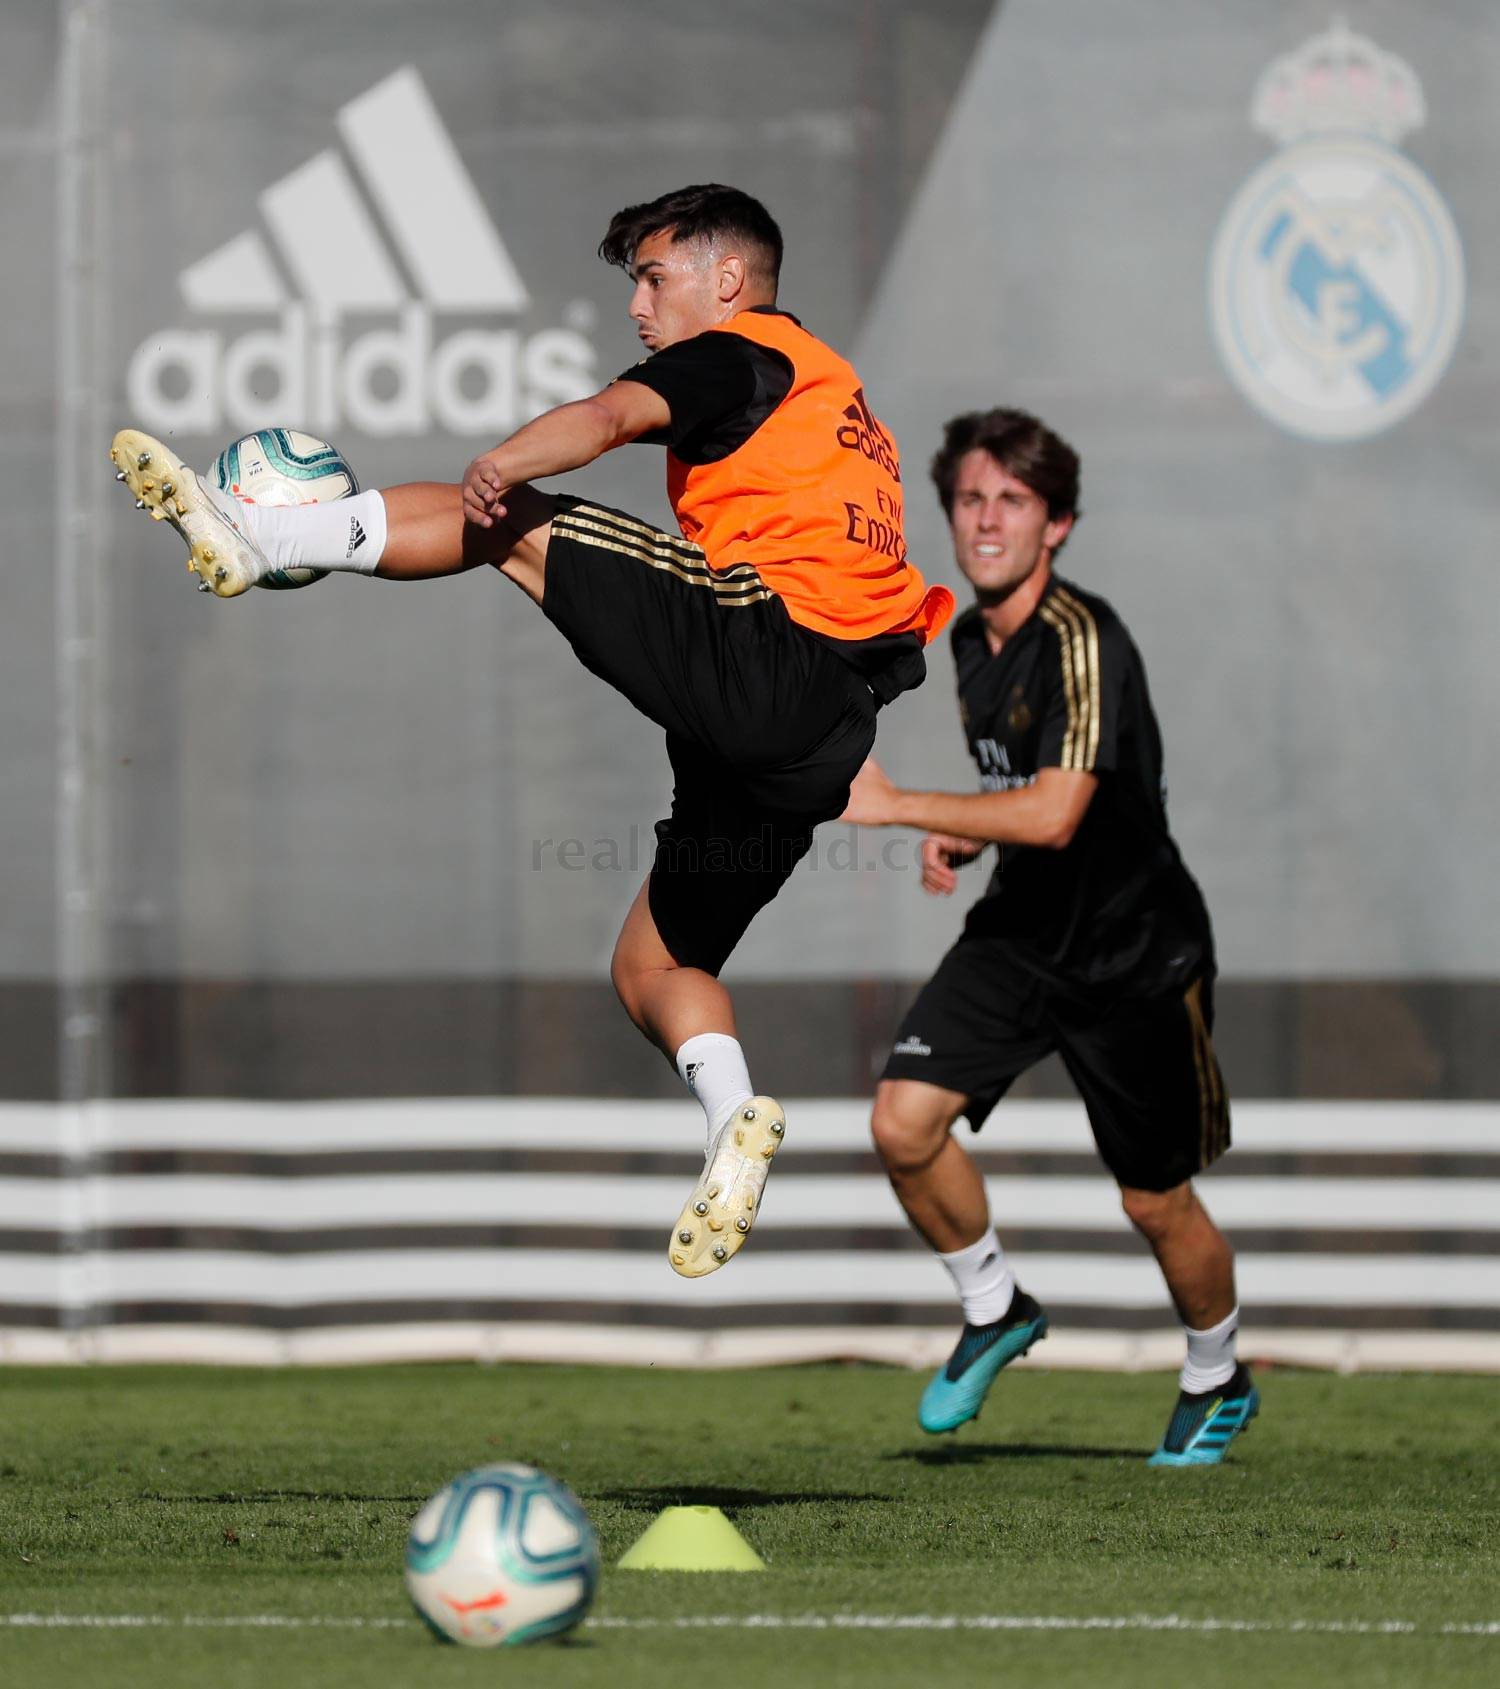 Real Madrid - Entrenamiento del Real Madrid  - 08-10-2019